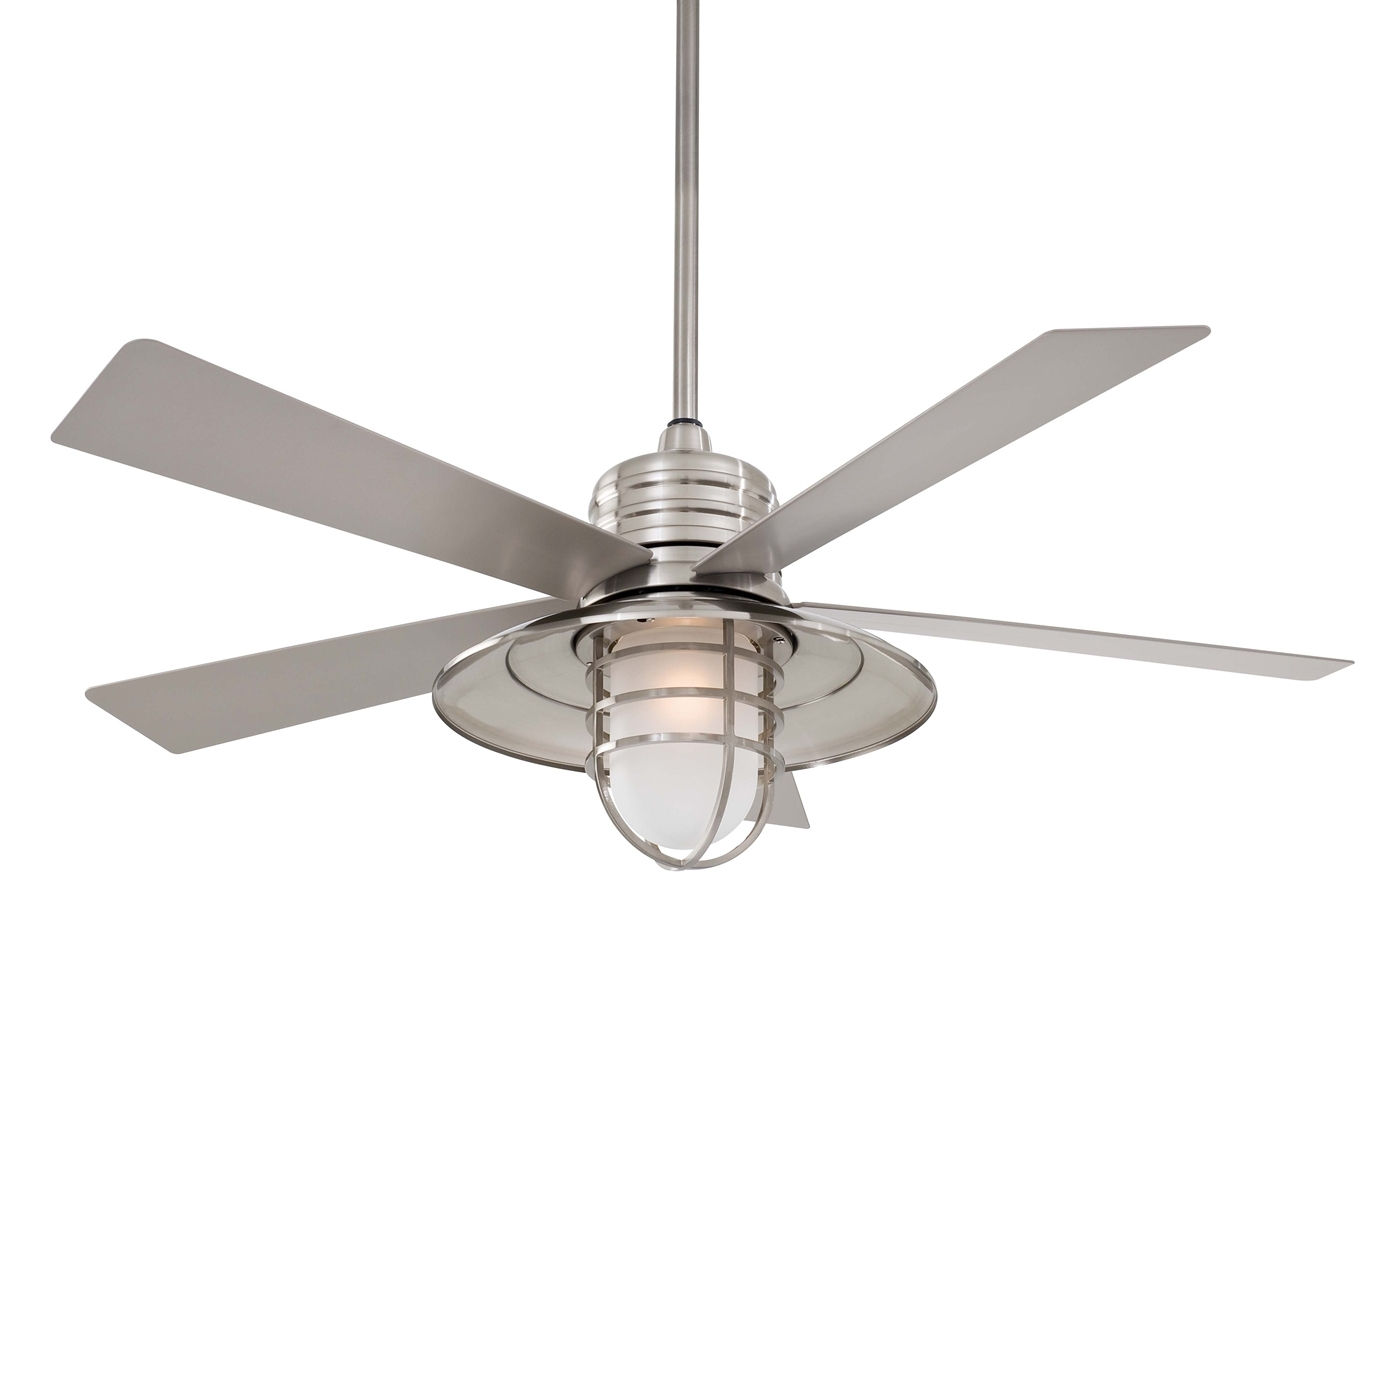 Ceiling Fan: Best Outdoor Ceiling Fans Design Ceiling Fan With Light Within Most Recently Released Rustic Outdoor Ceiling Fans With Lights (View 2 of 20)